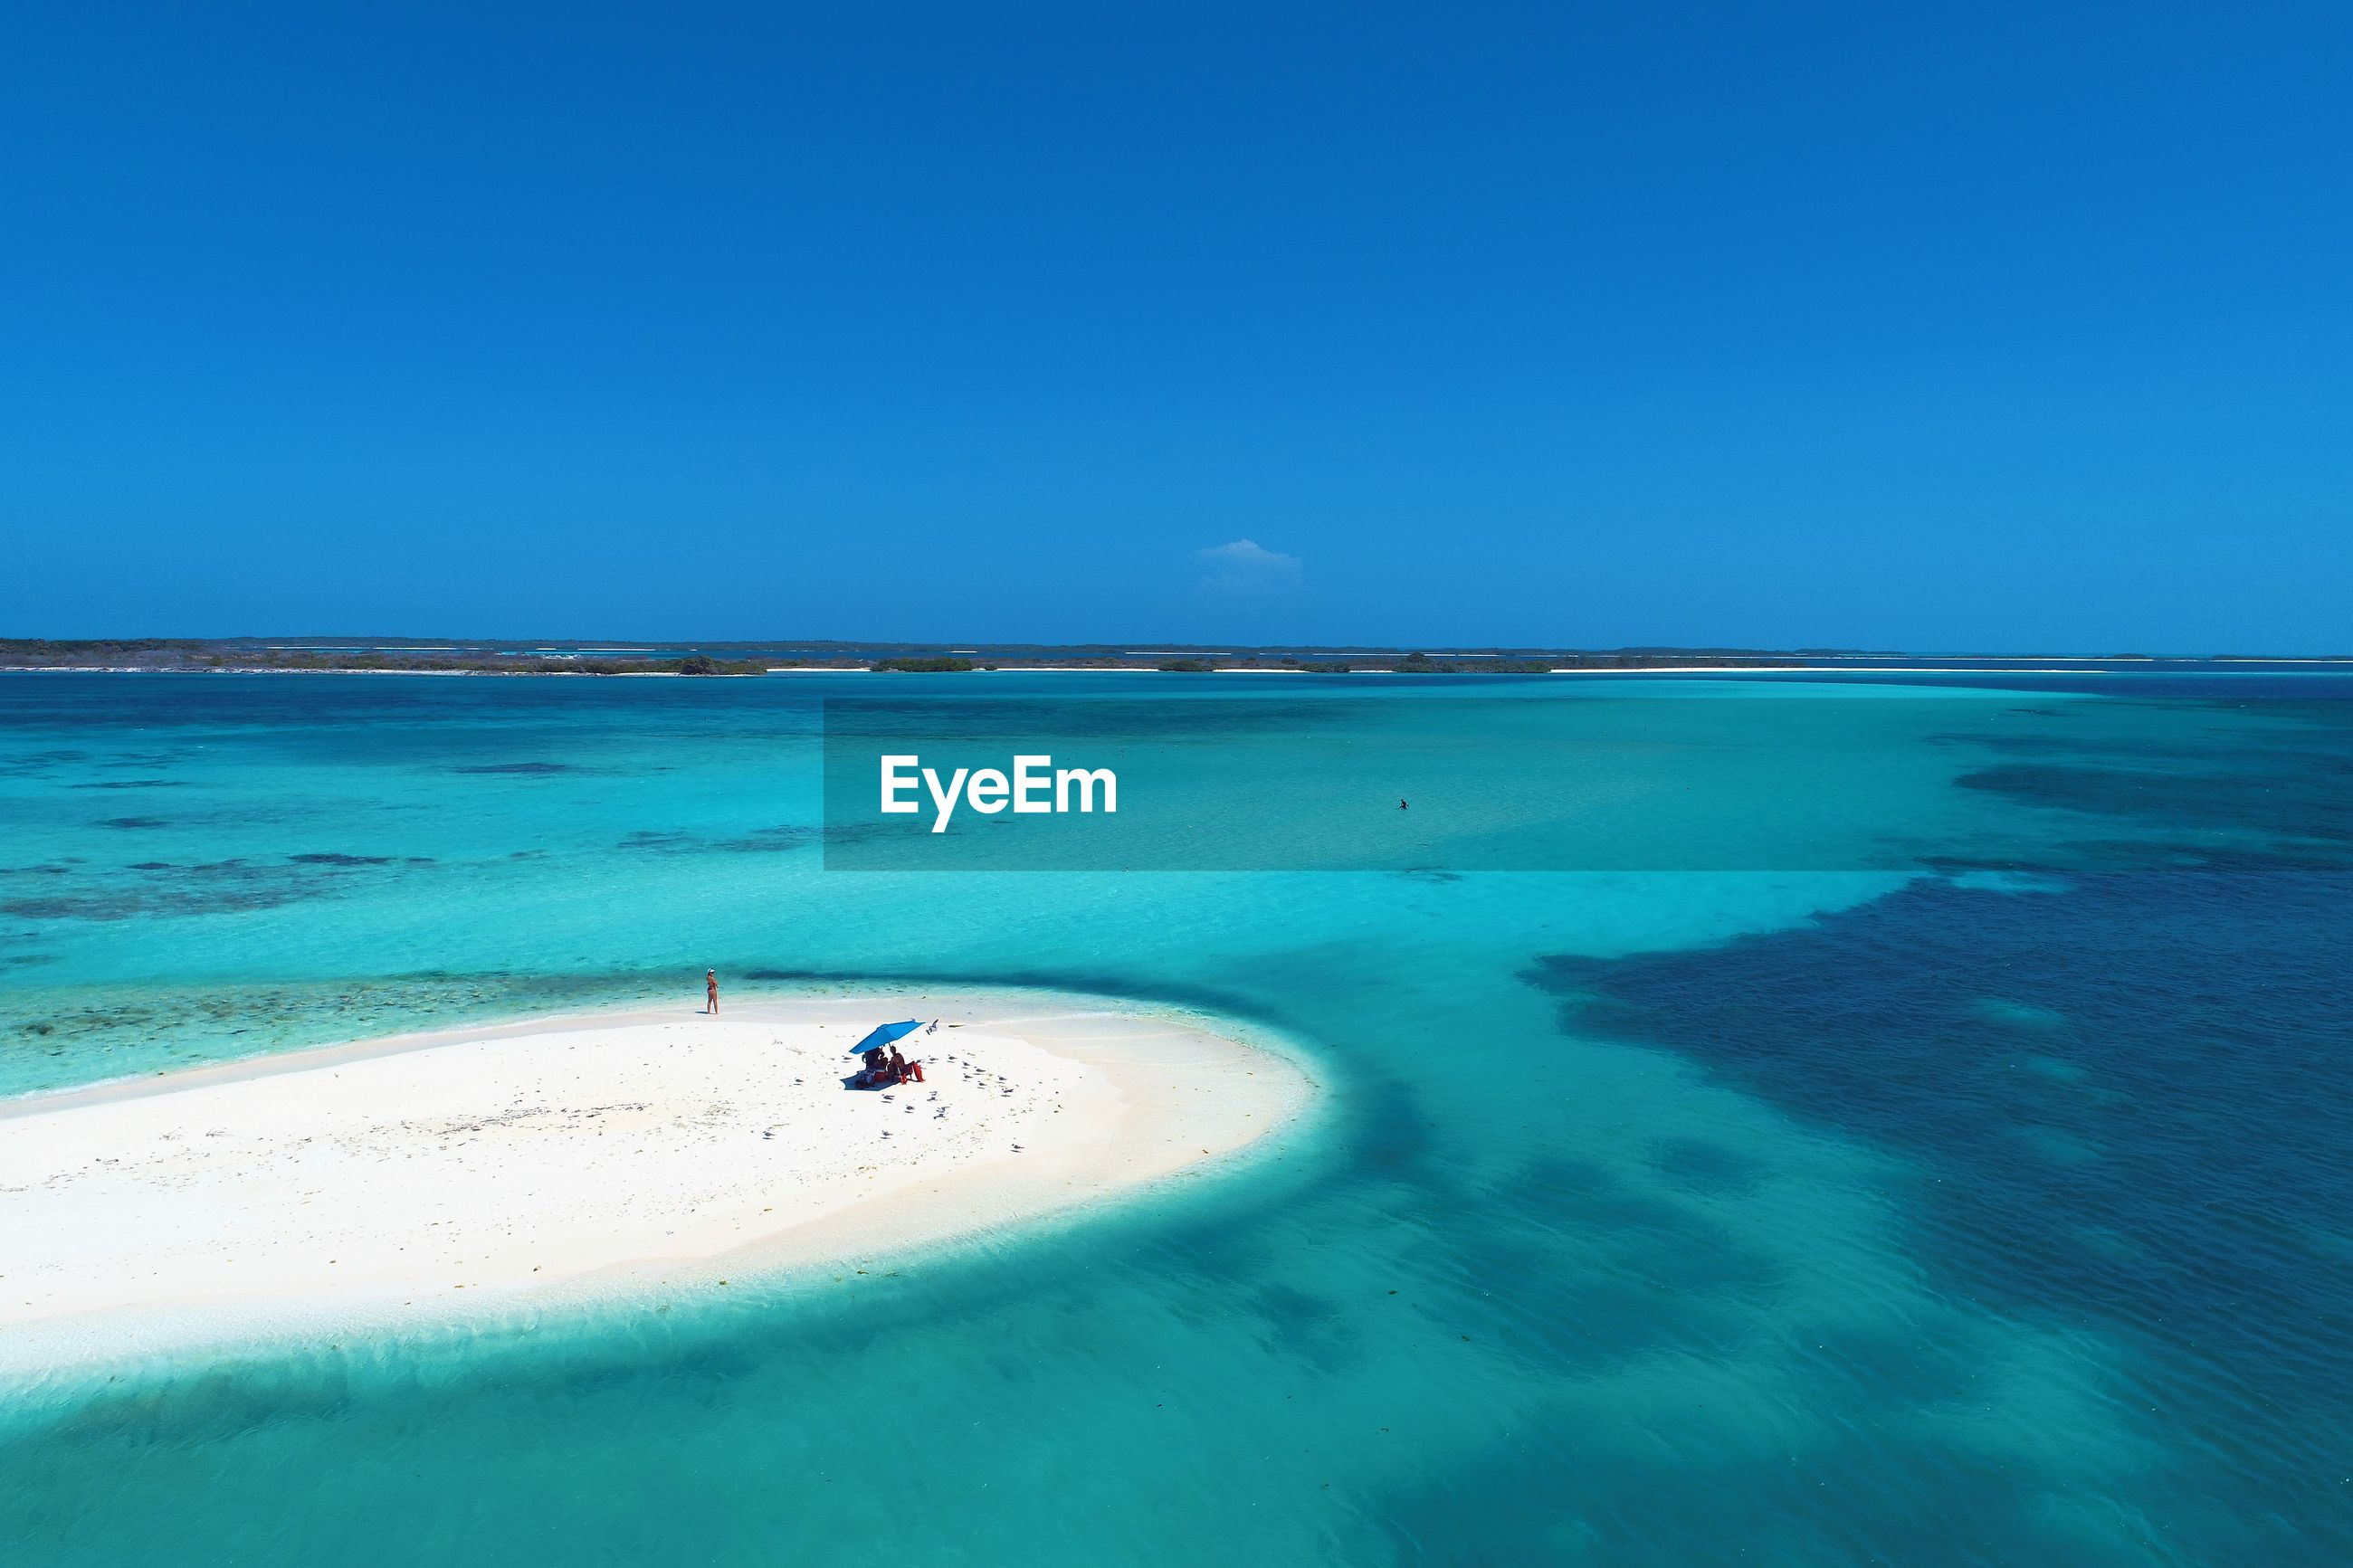 Drone view of beach with clear water in los roques, caribbean sea, venezuela